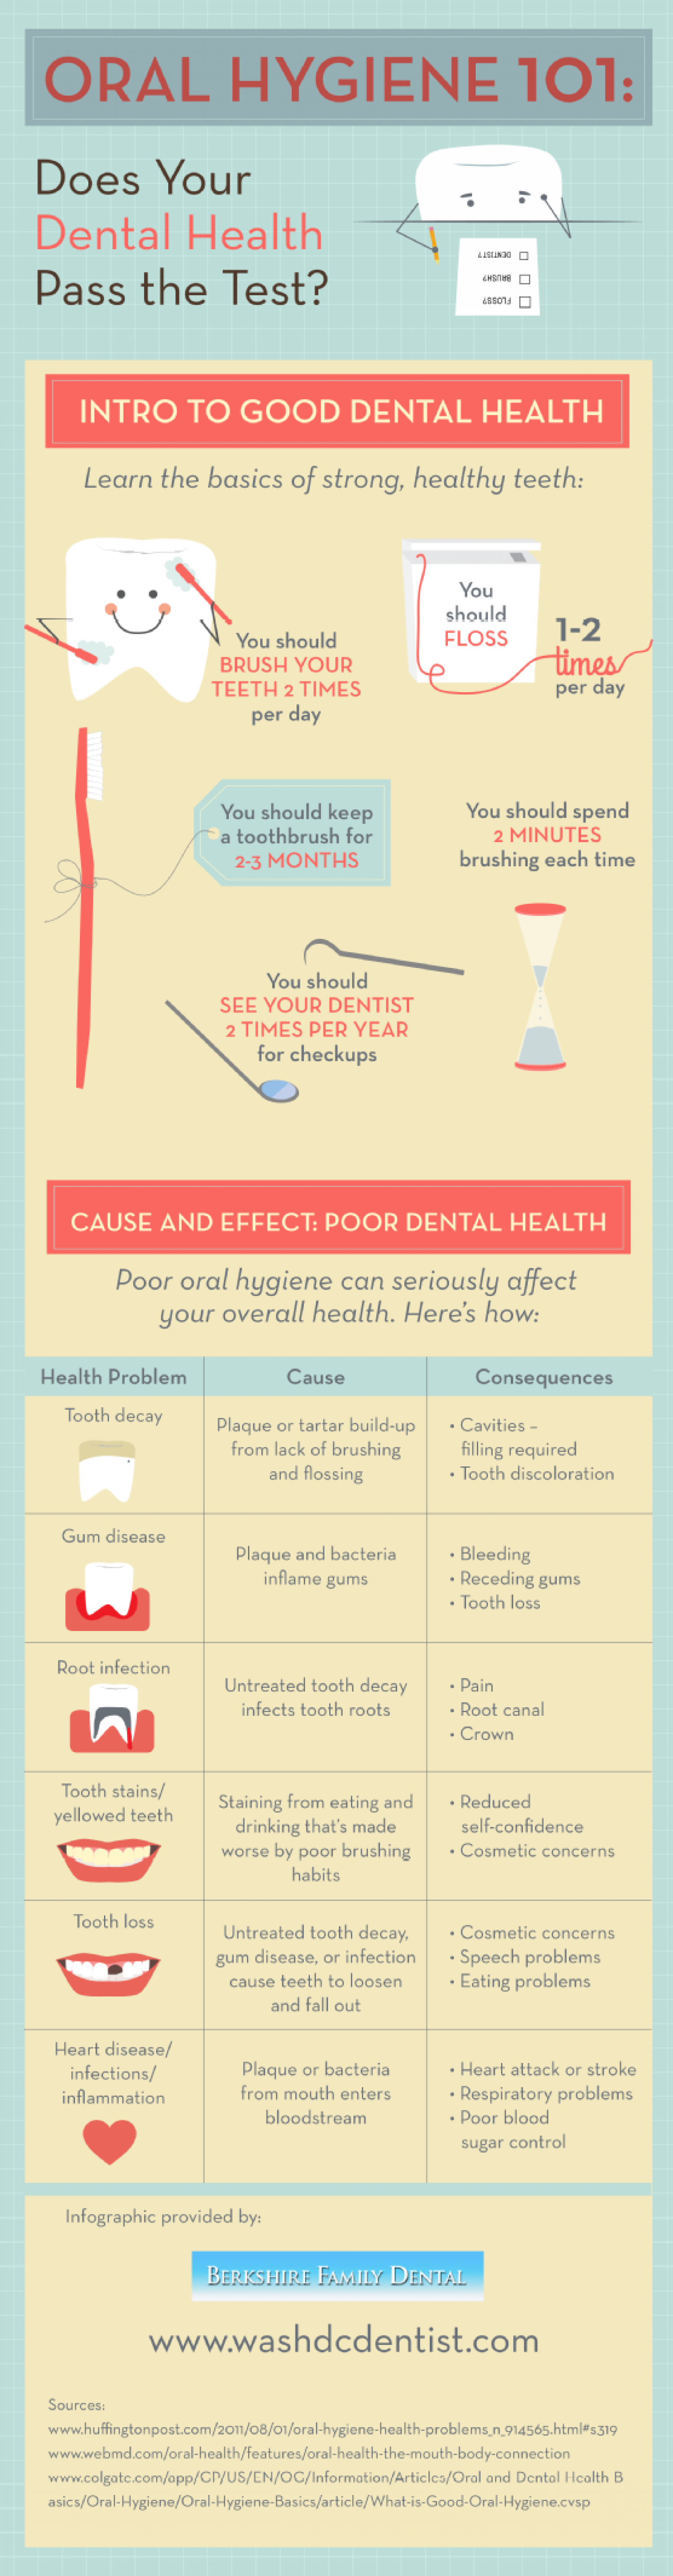 Oral Hygiene 101: Does Your Dental Health Pass the Test?  Infographic